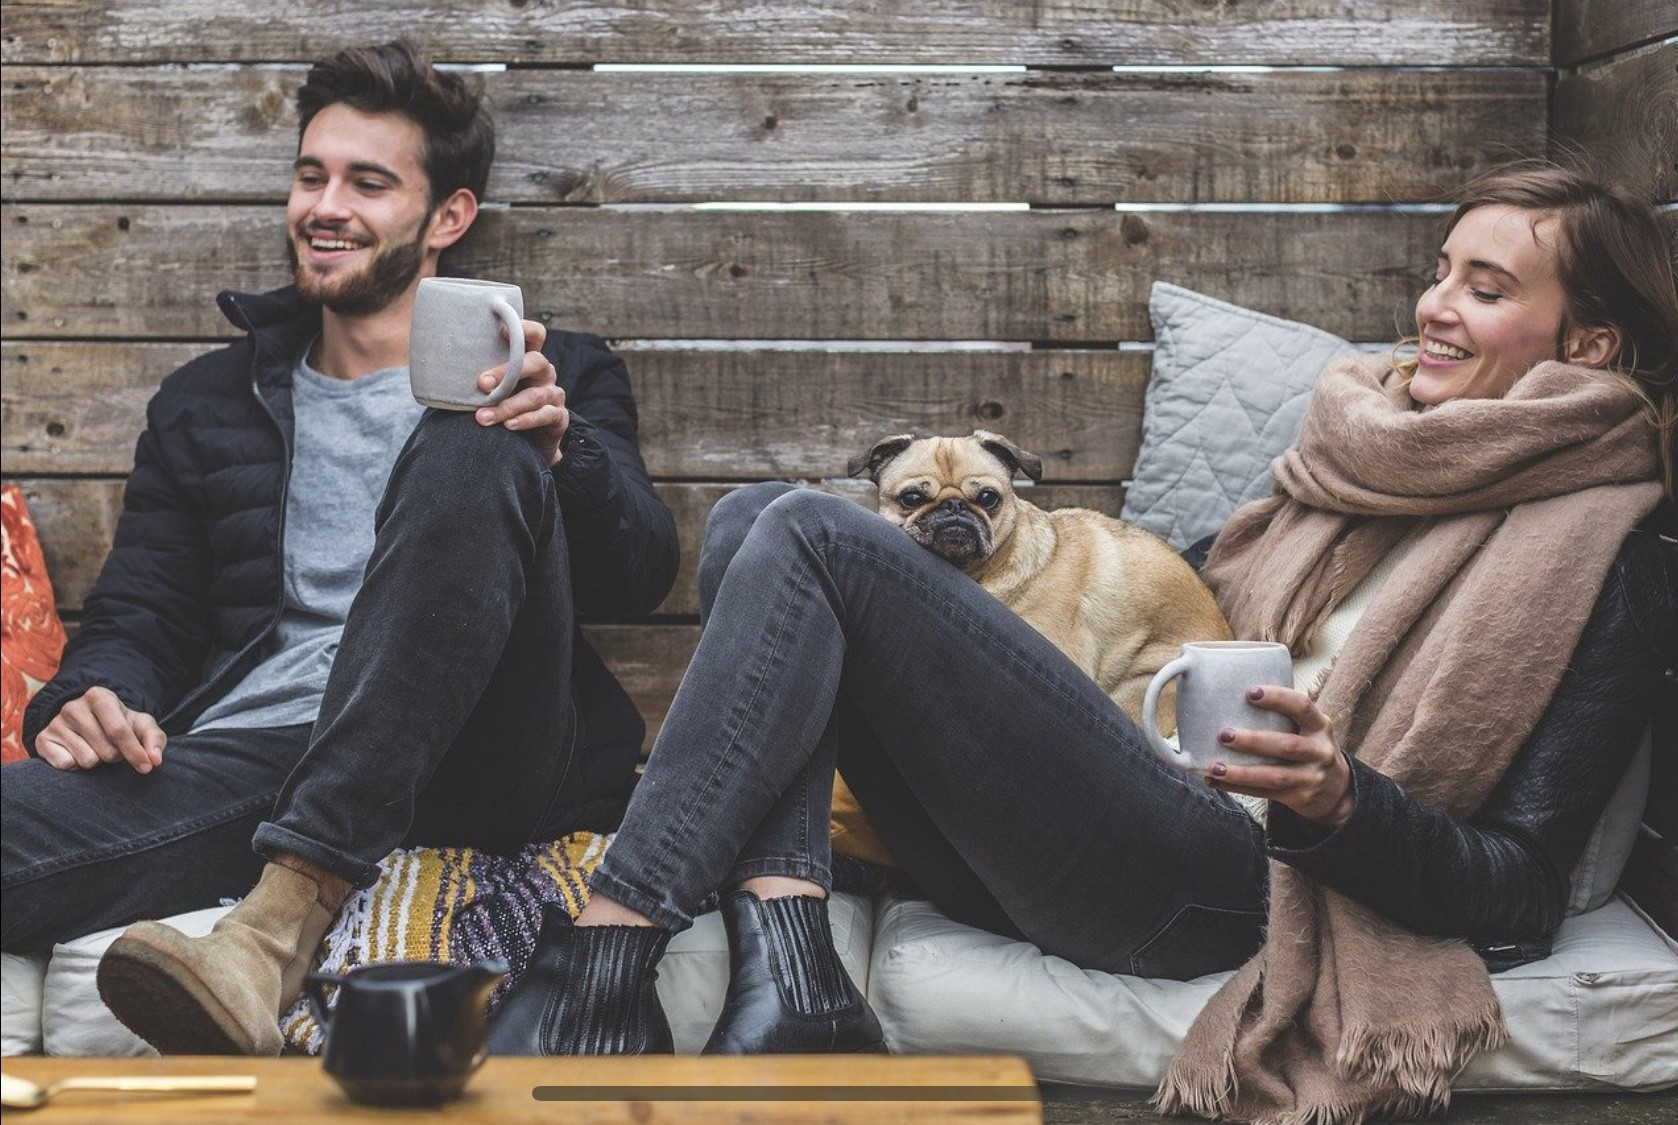 A smiling couple drink hot drinks and enjoy each other's company with a cute dog on her lap.